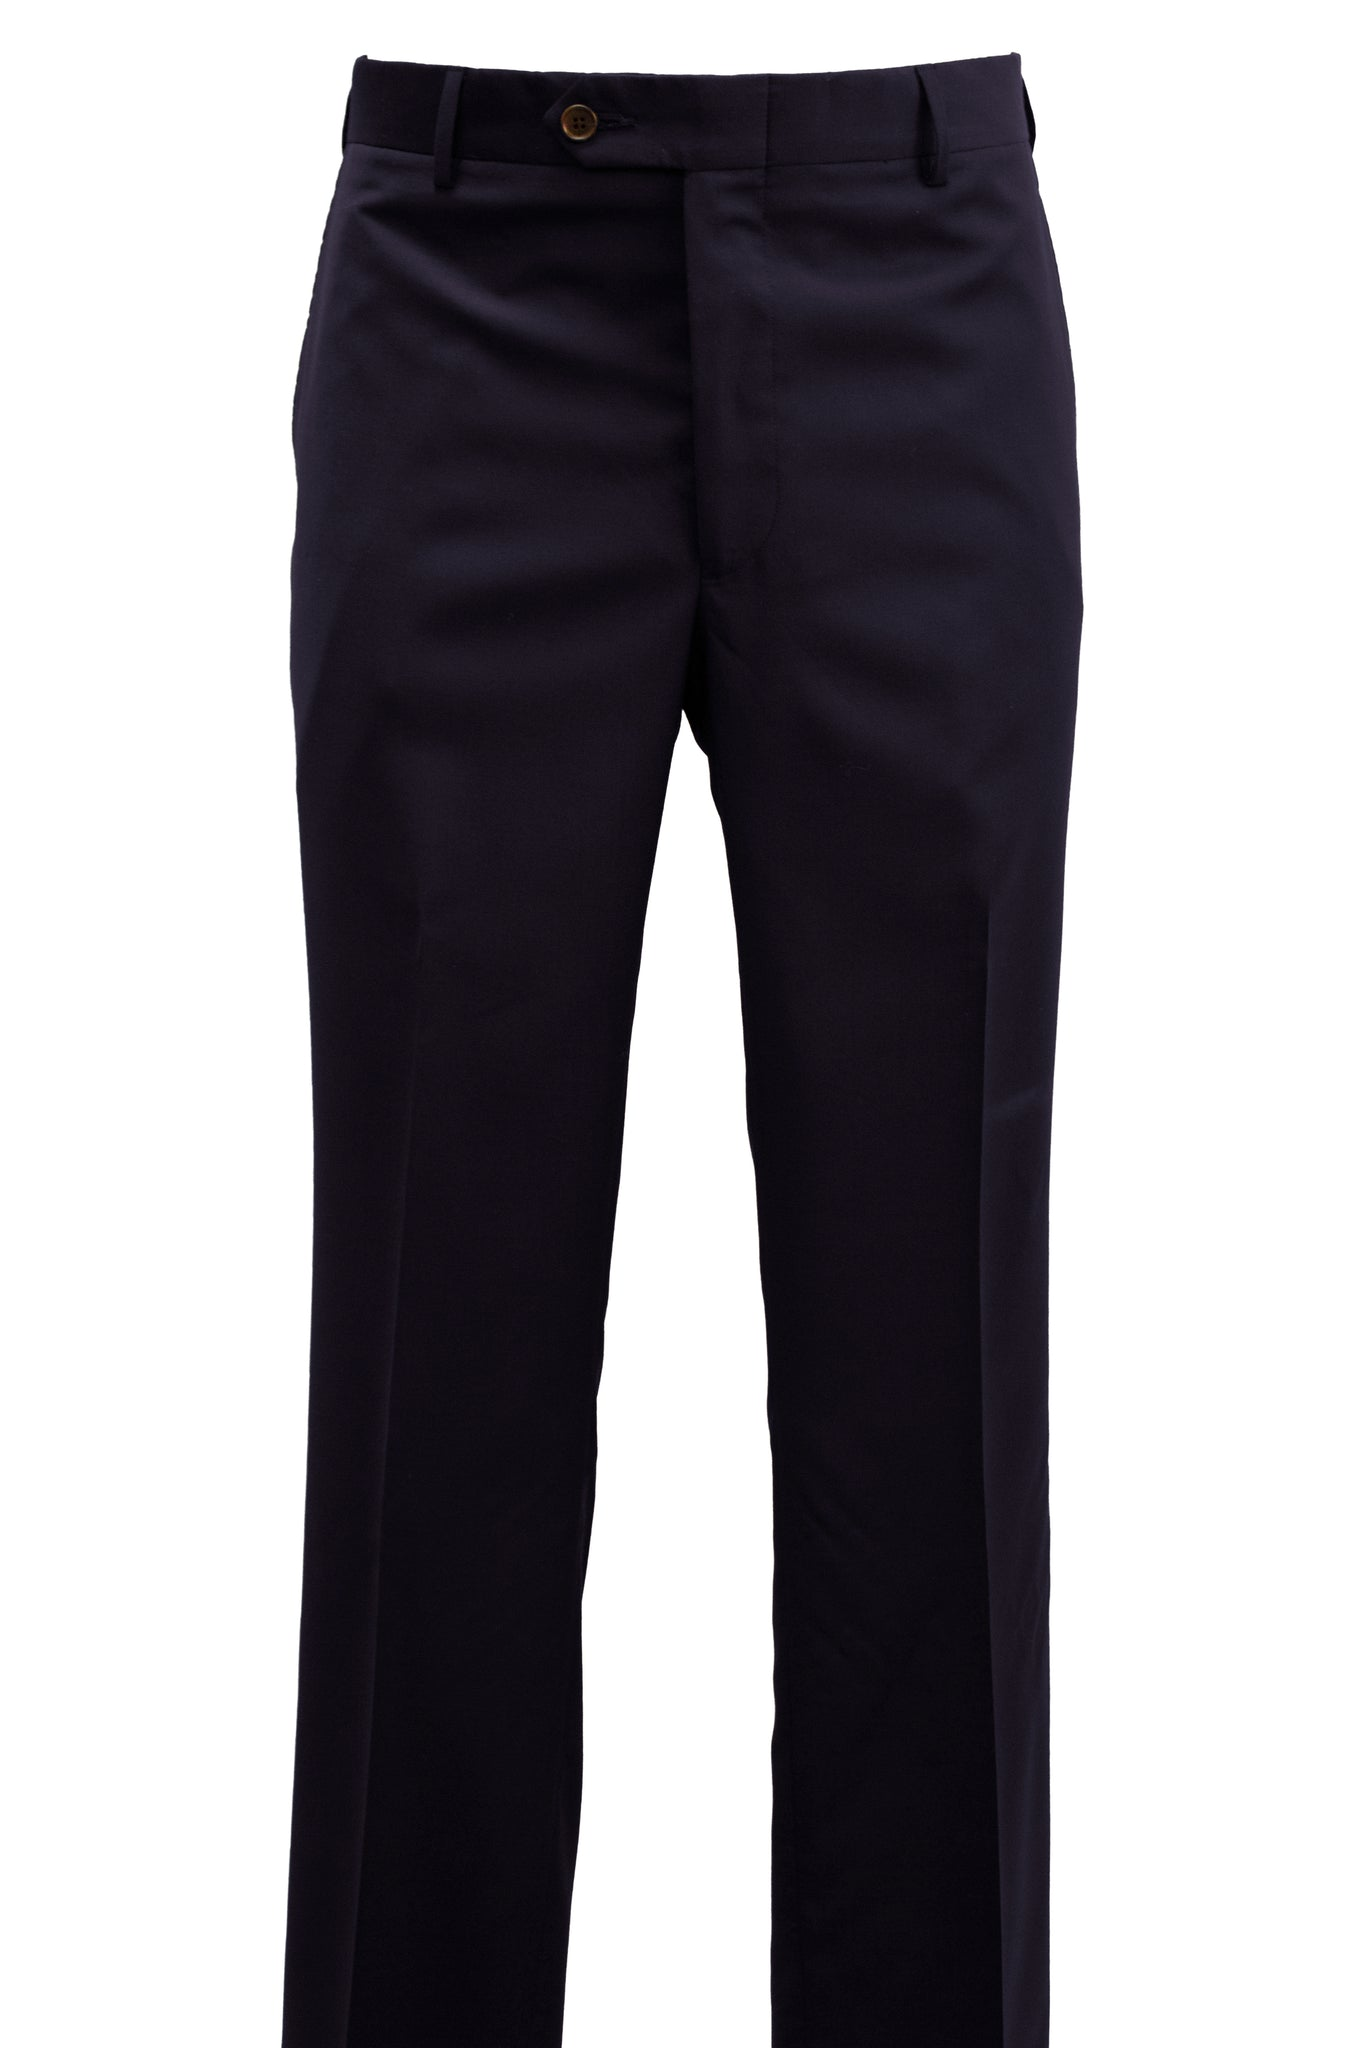 Modern Fit Navy Super 120's Wool Flat Front Dress Pant -  Hardwick.com